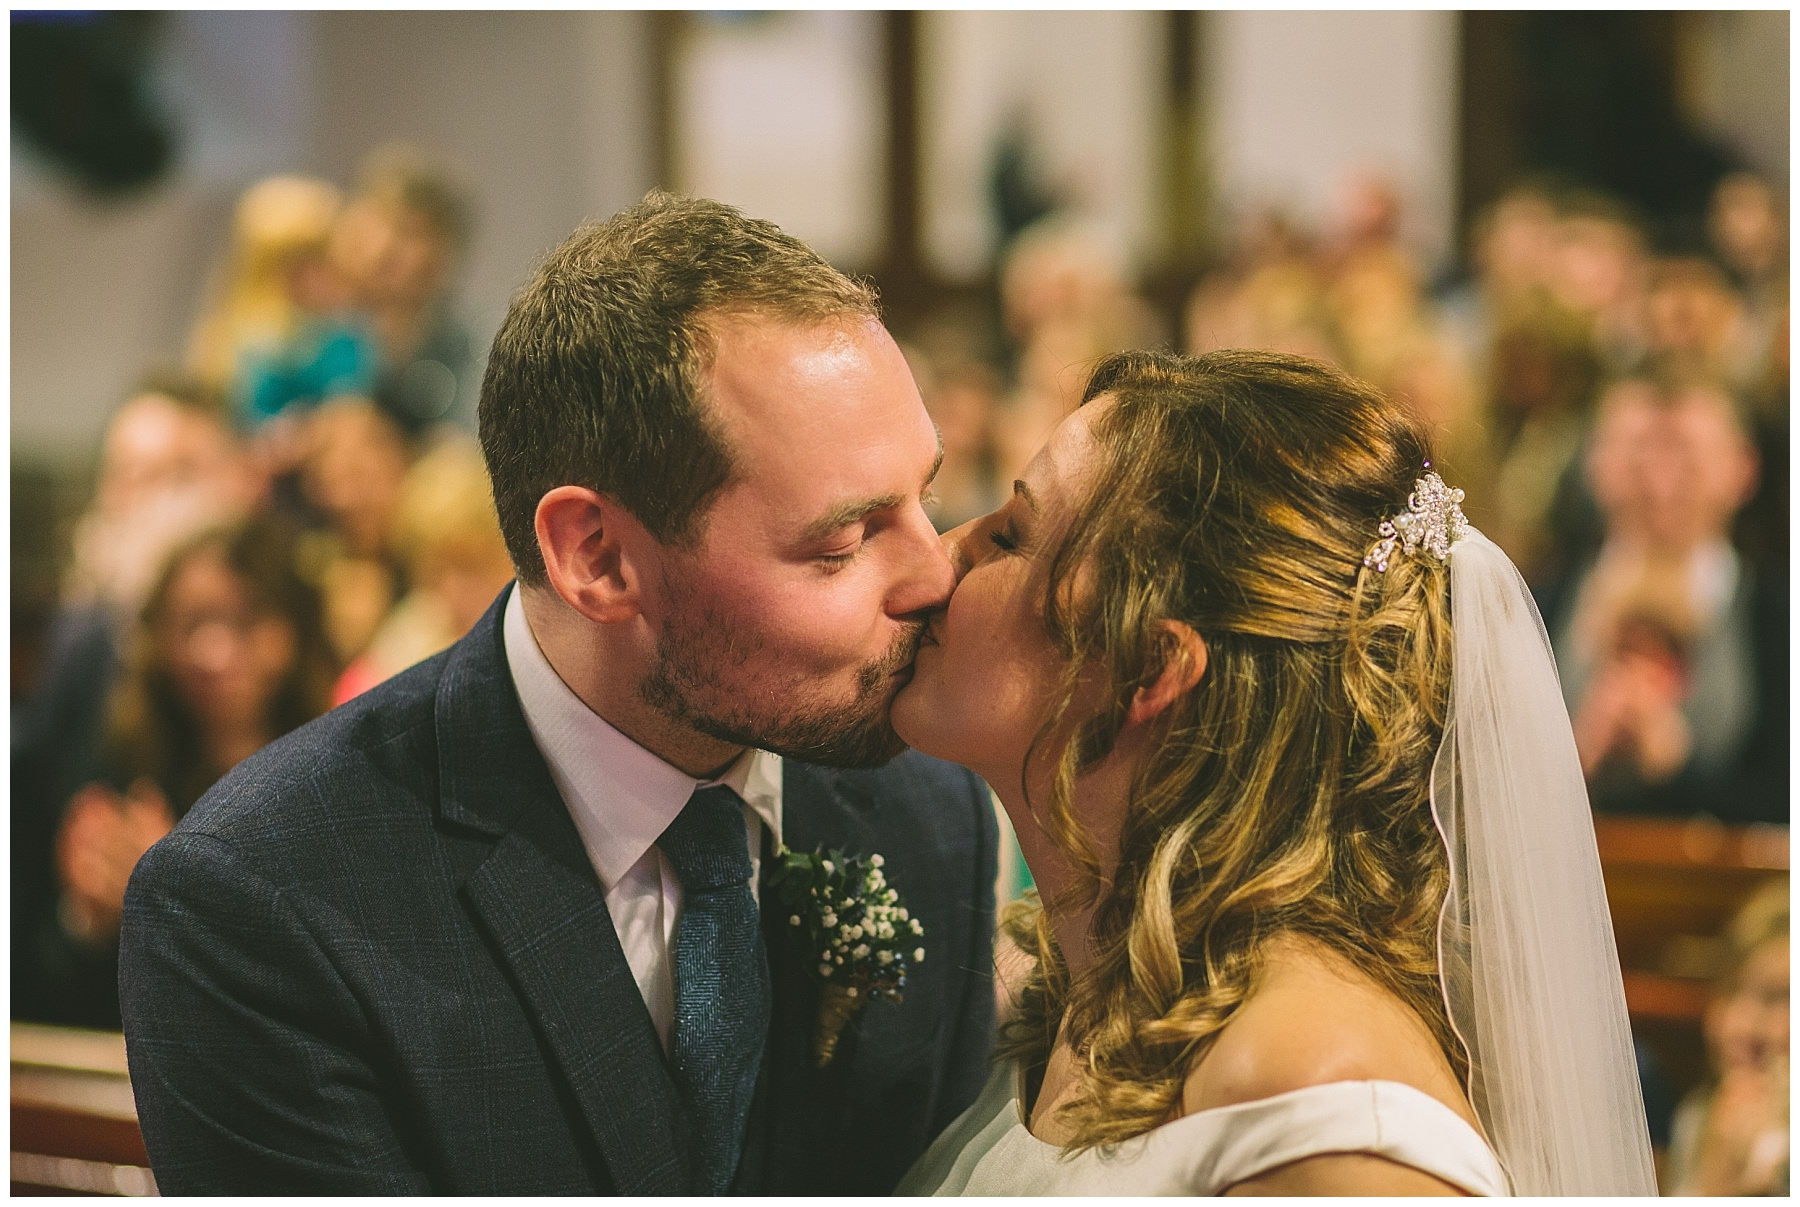 First kiss during church wedding in Ramsbottom